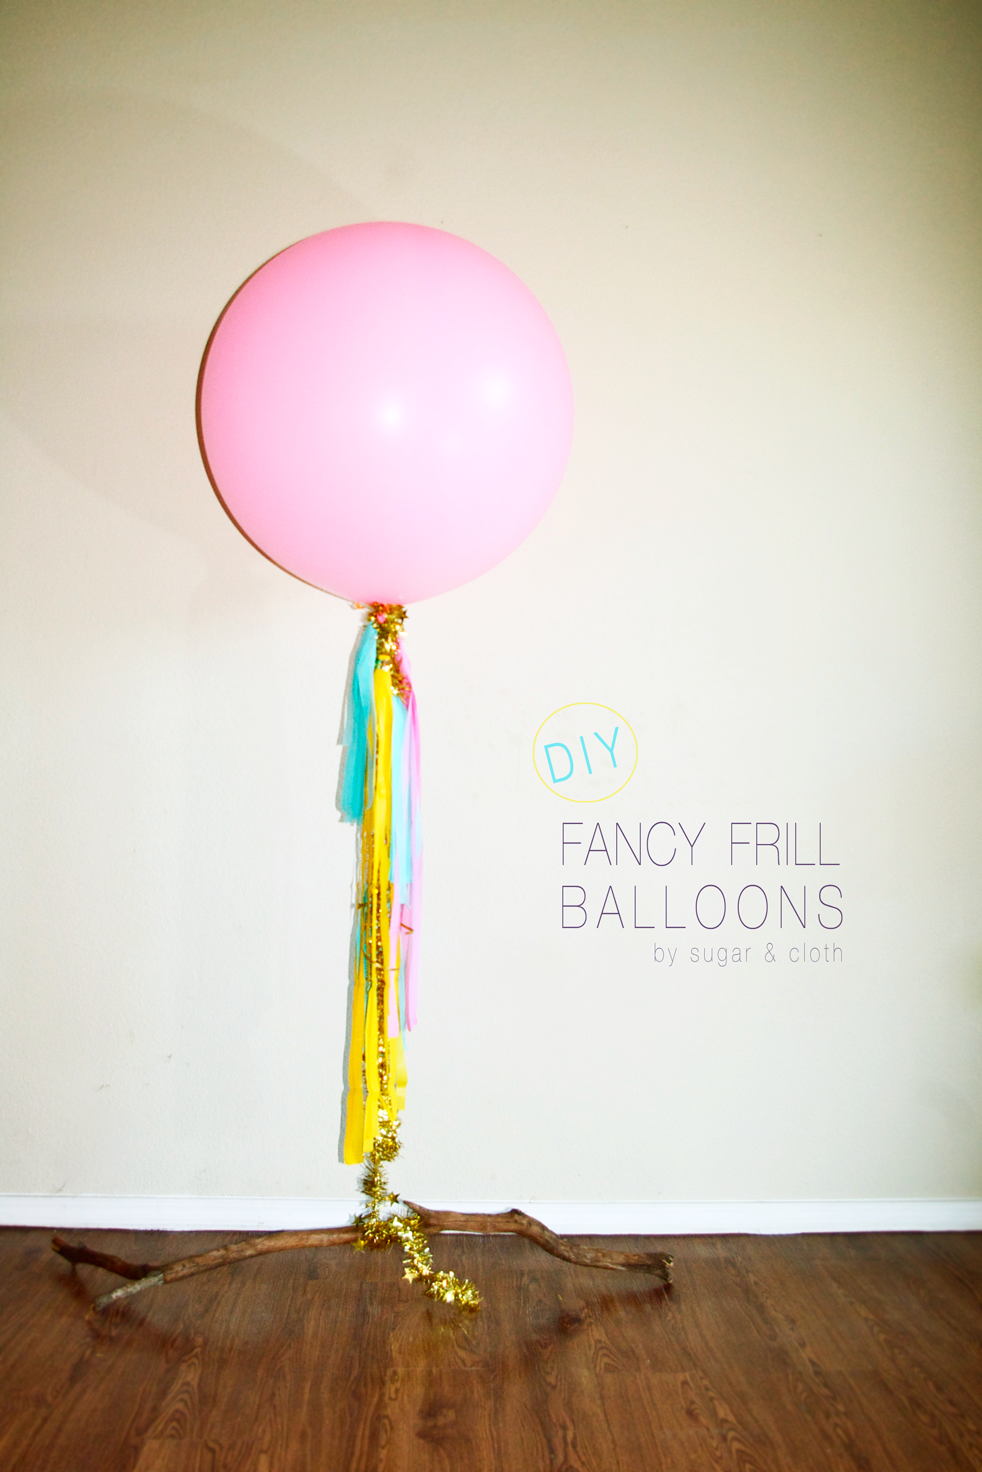 how to make fancy frill balloons